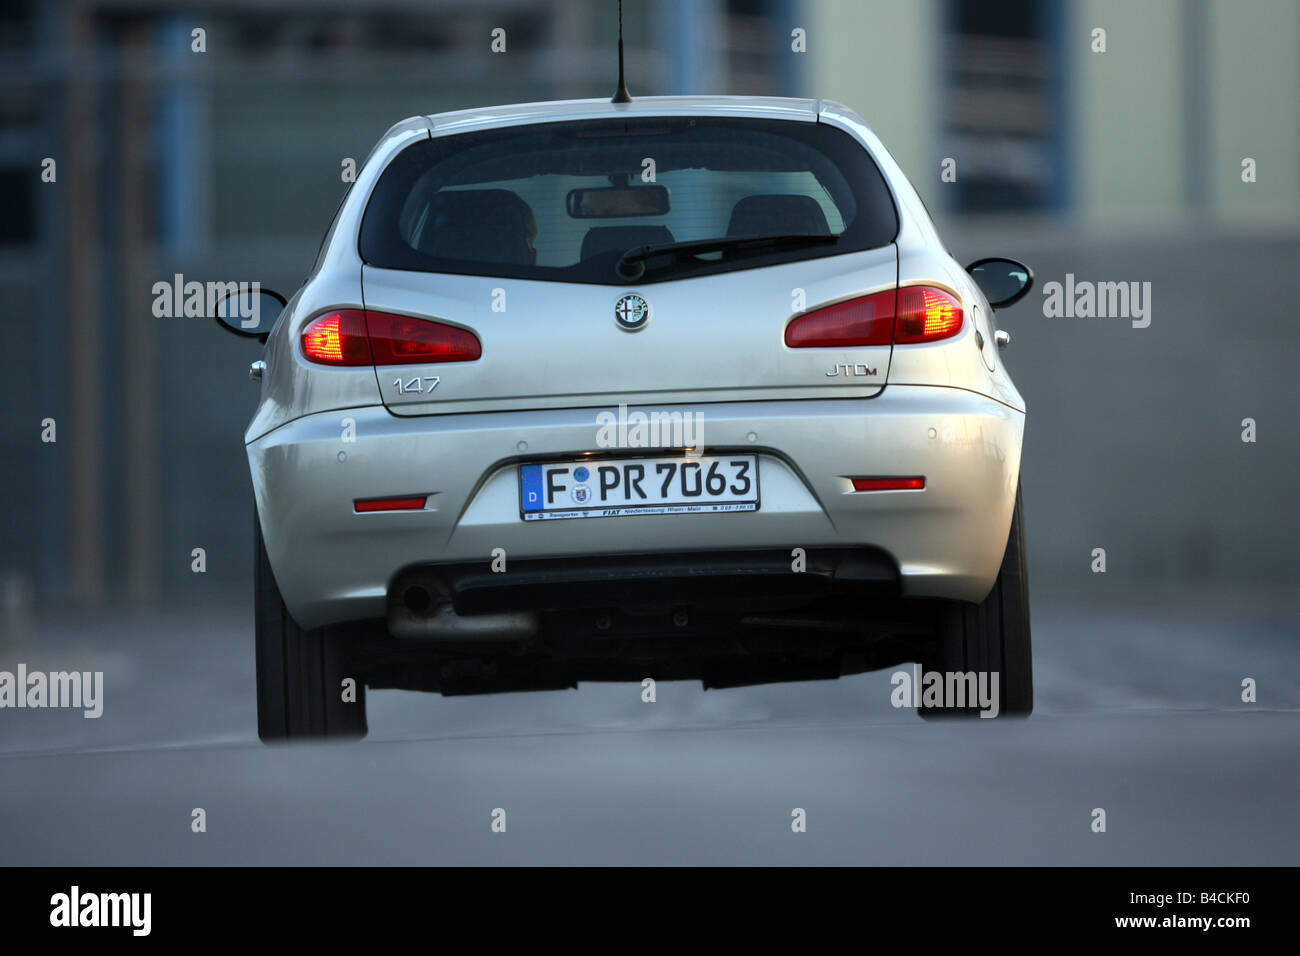 1 147 Stock Photos Images Alamy Alfa Romeo Jtd Wiring Diagram 19 16 V Distinctive Model Year 2004 Silver